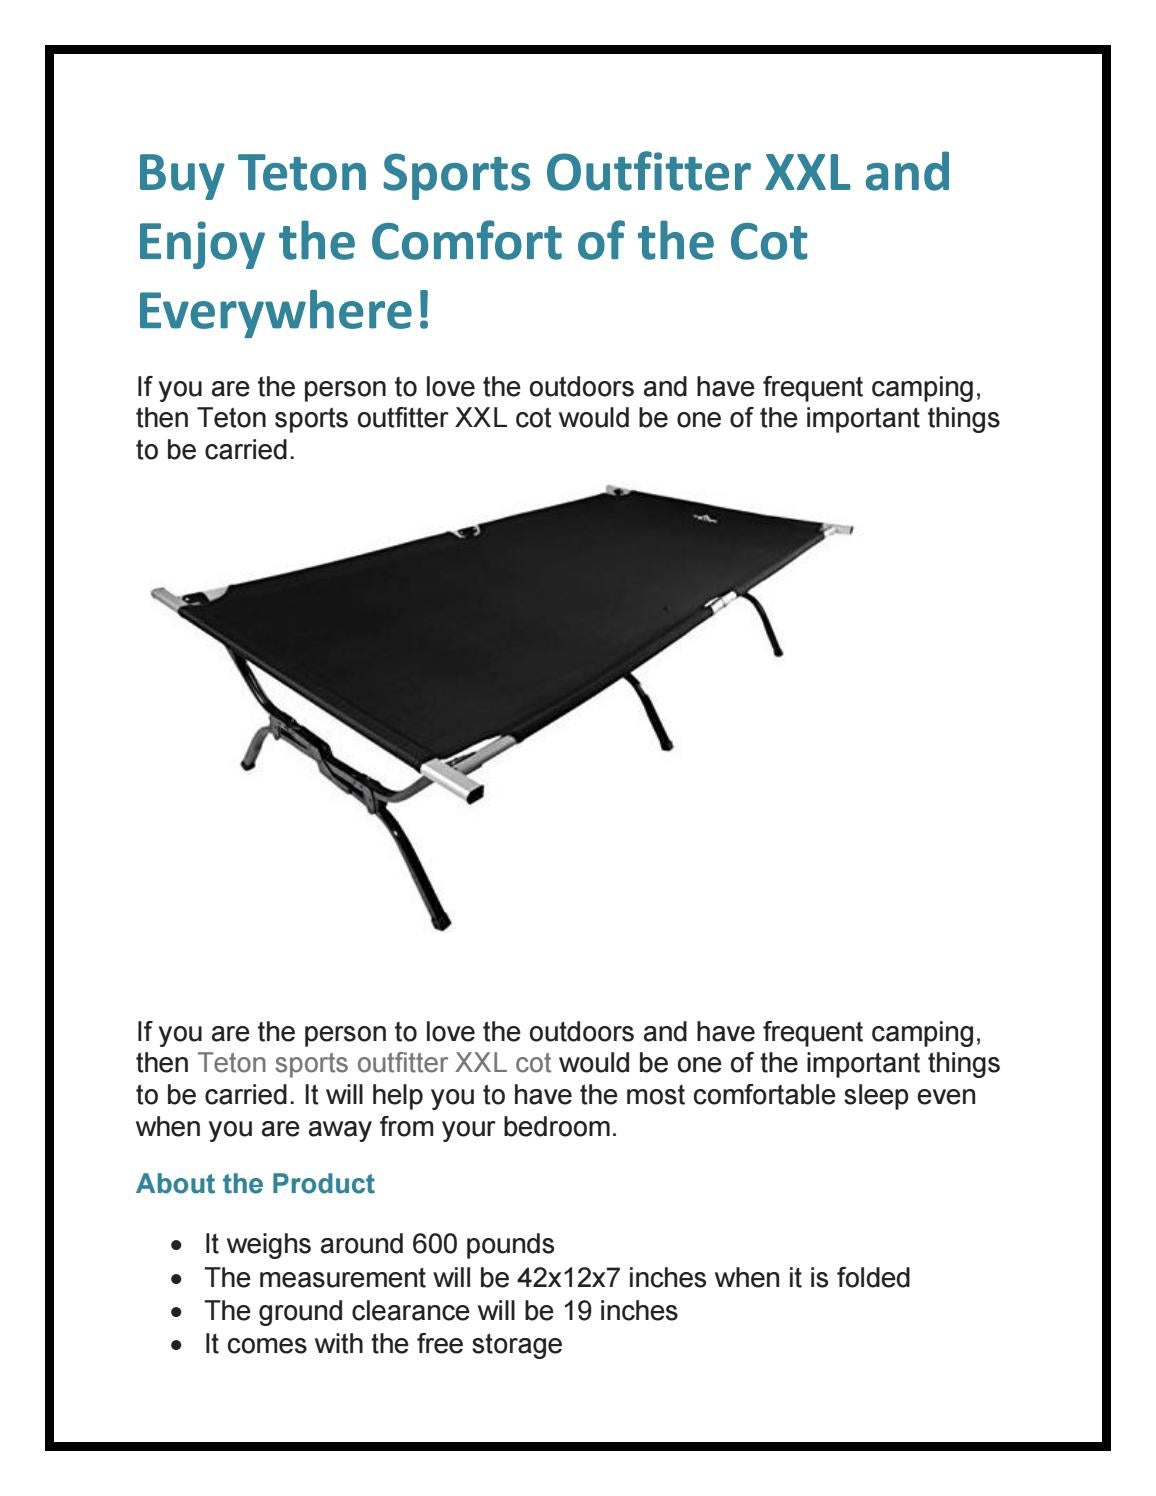 Buy Teton Sports Outfitter Xxl And Enjoy The Comfort Of The Cot Everywhere By Smith Liza1963 Issuu